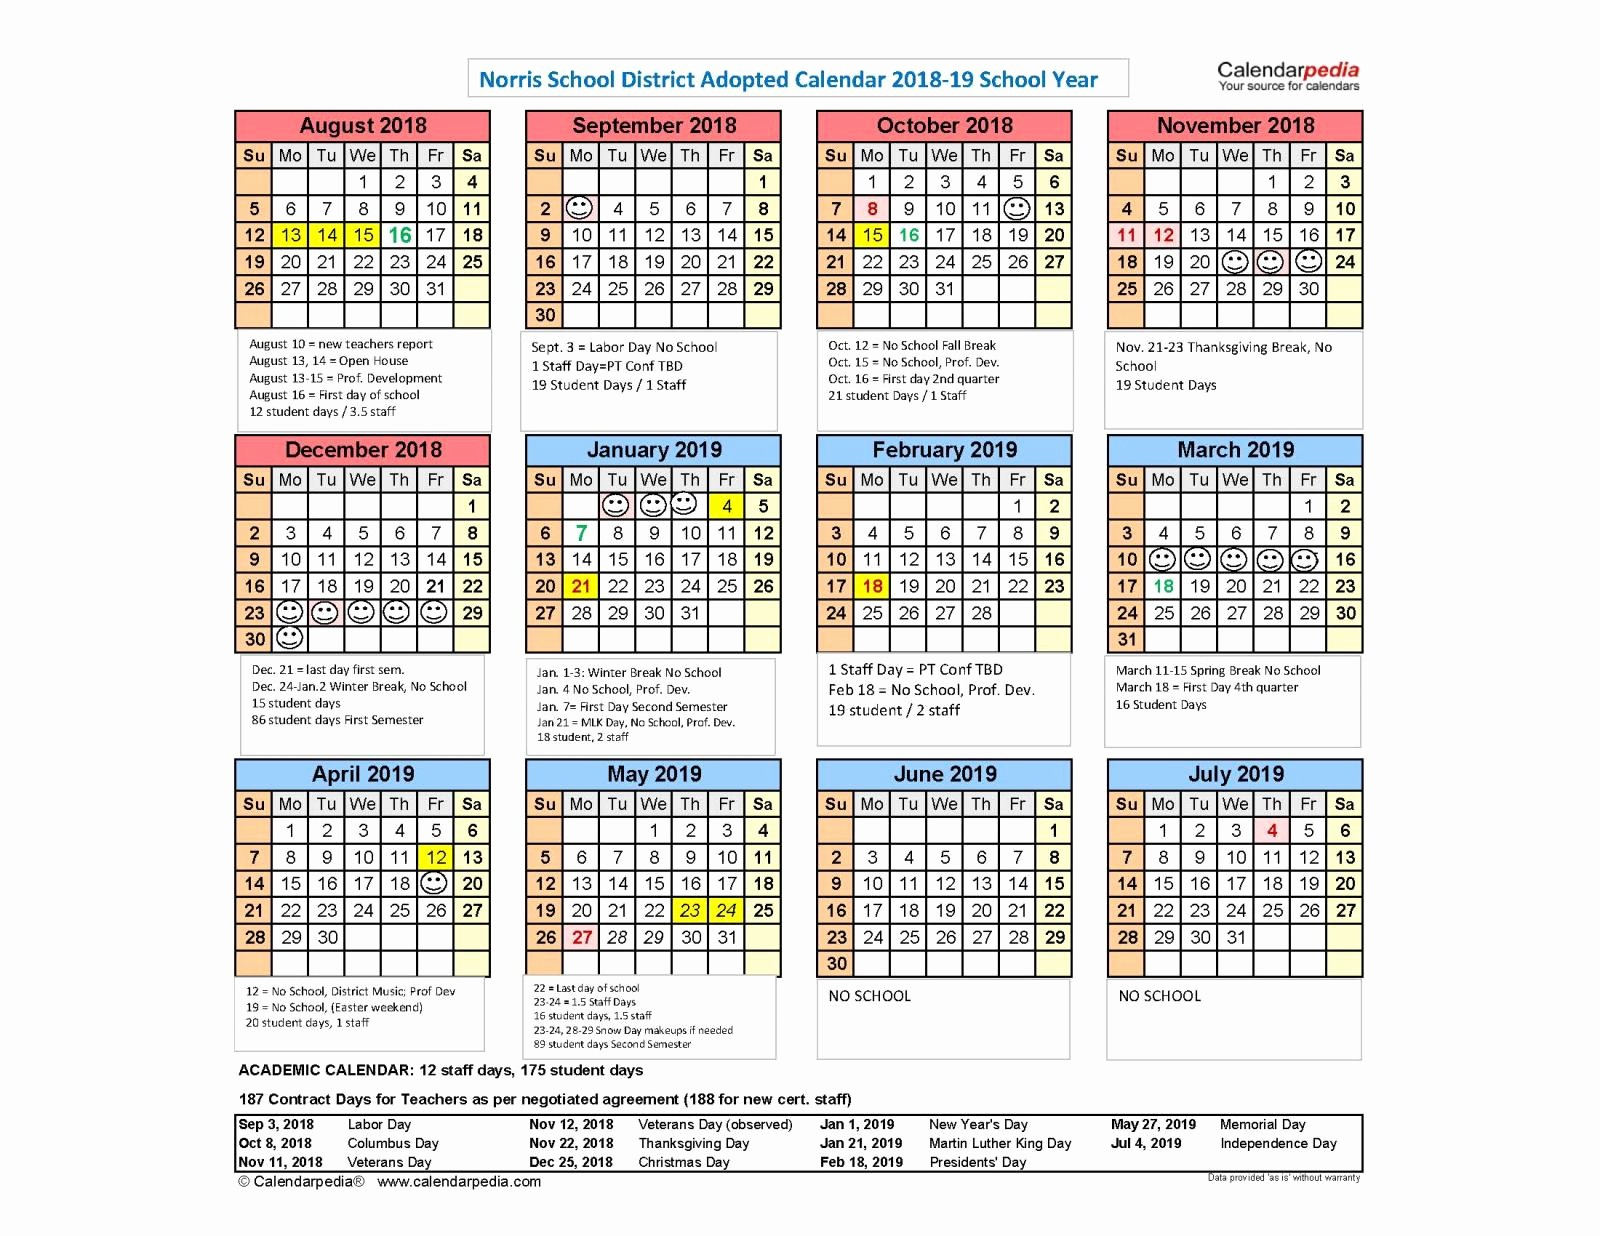 calendar 2018 19 school year available